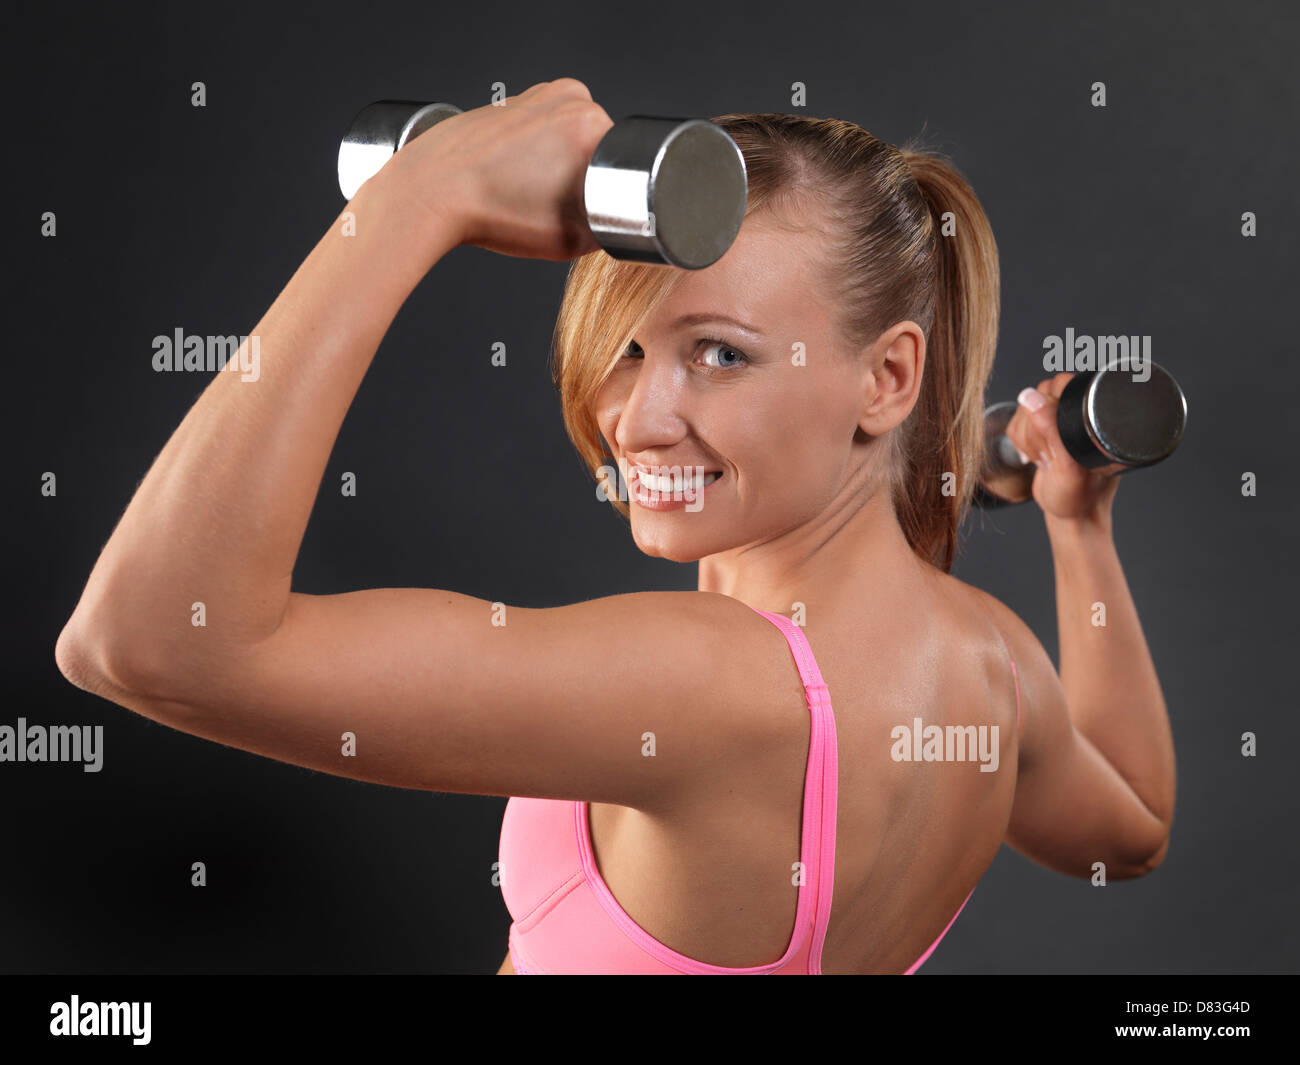 Portrait of a young smiling fitness woman exercising with weights - Stock Image